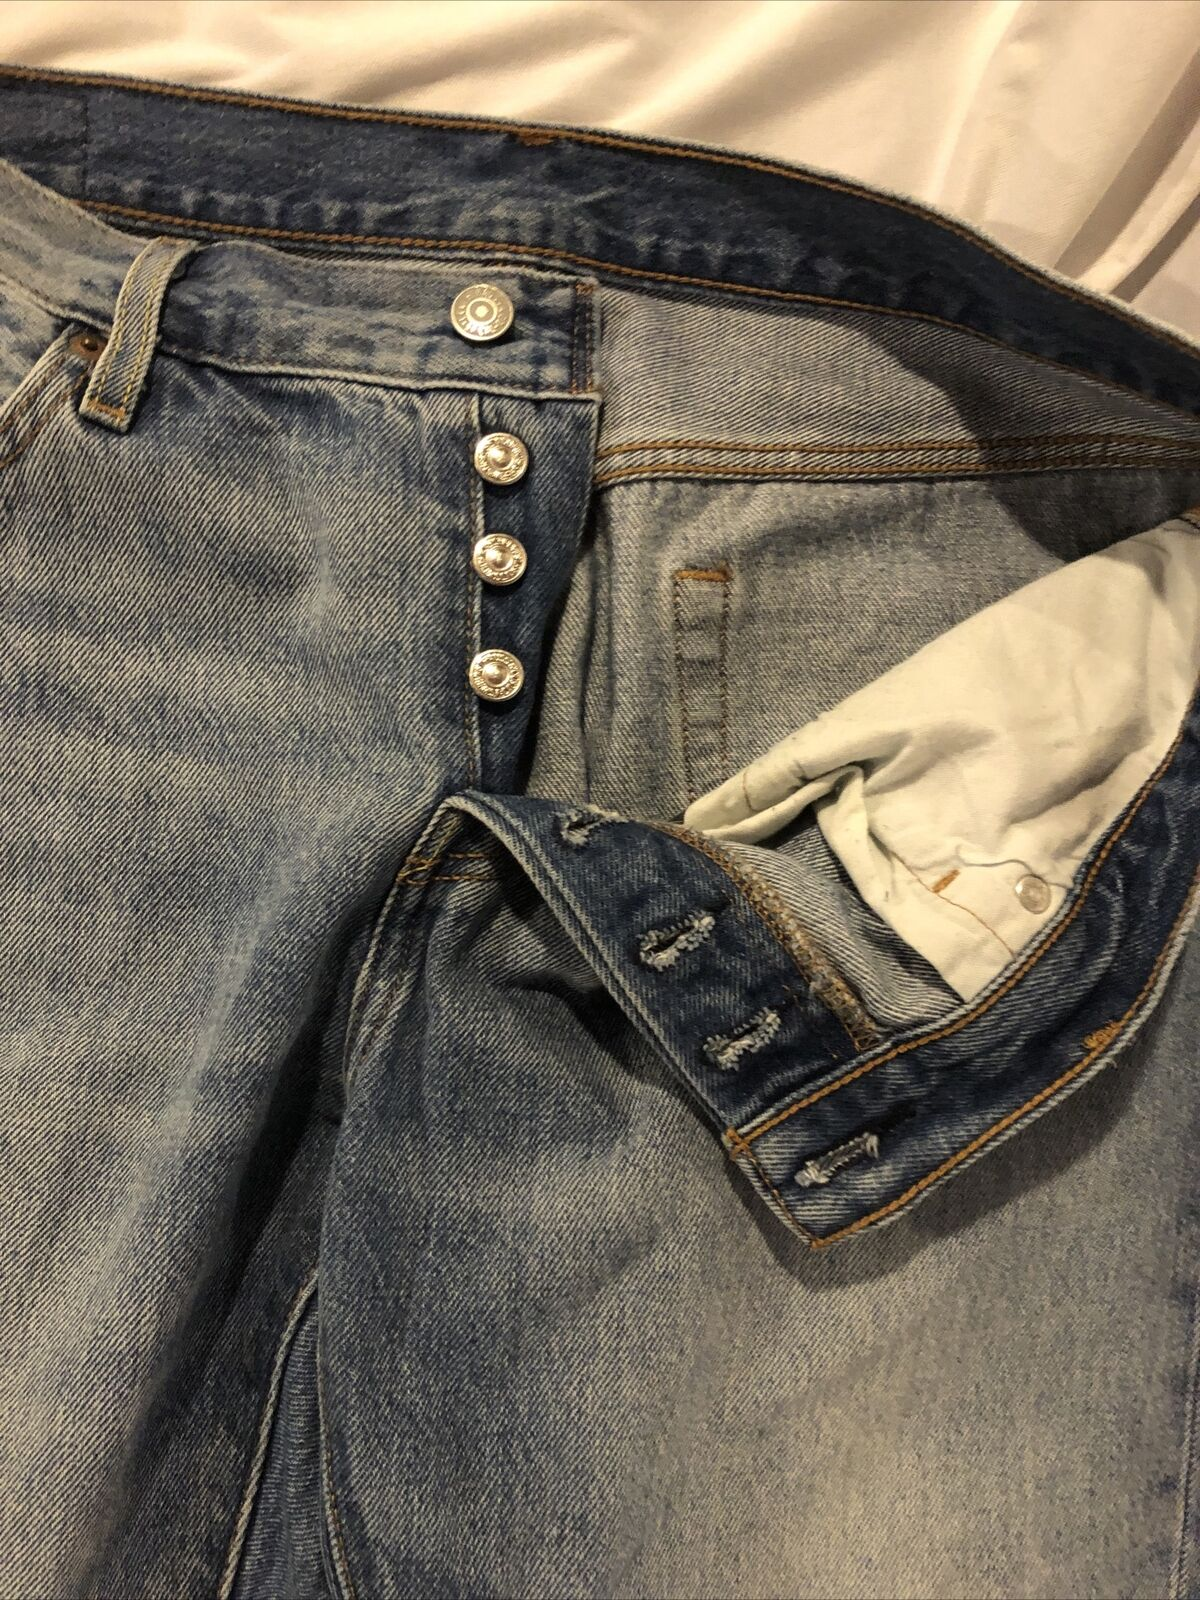 Levis Distressed 501 CT Jeans Size 28/32 - image 9